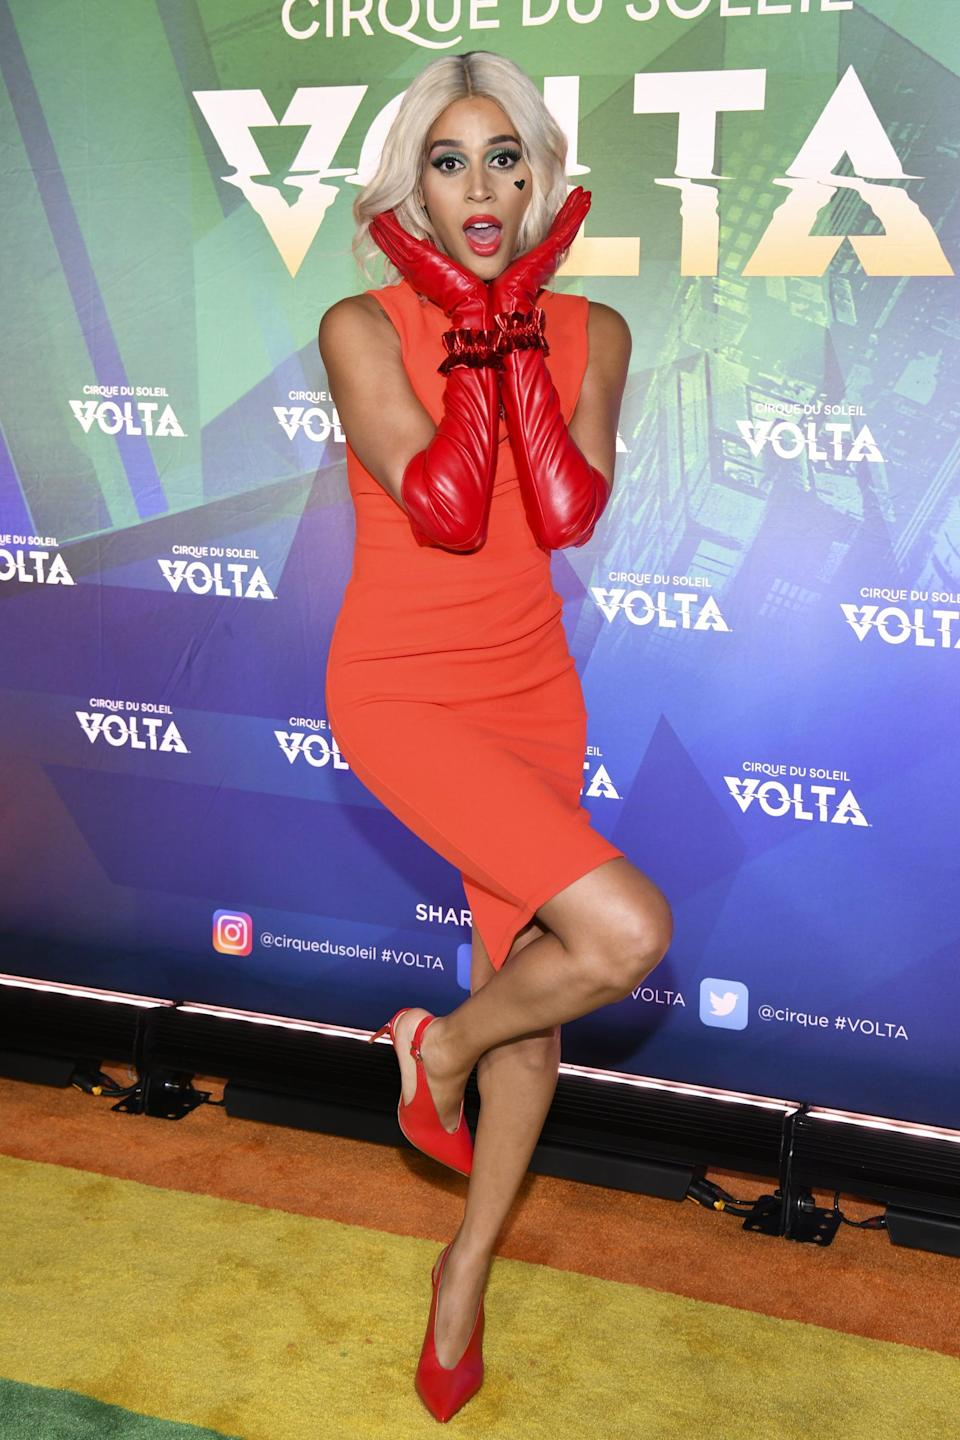 <p>Isis entered the scene as a contestant on <strong>America's Next Top Model</strong>, but she's modeled for many brands. Isis was the first transgender American Apparel model.</p>